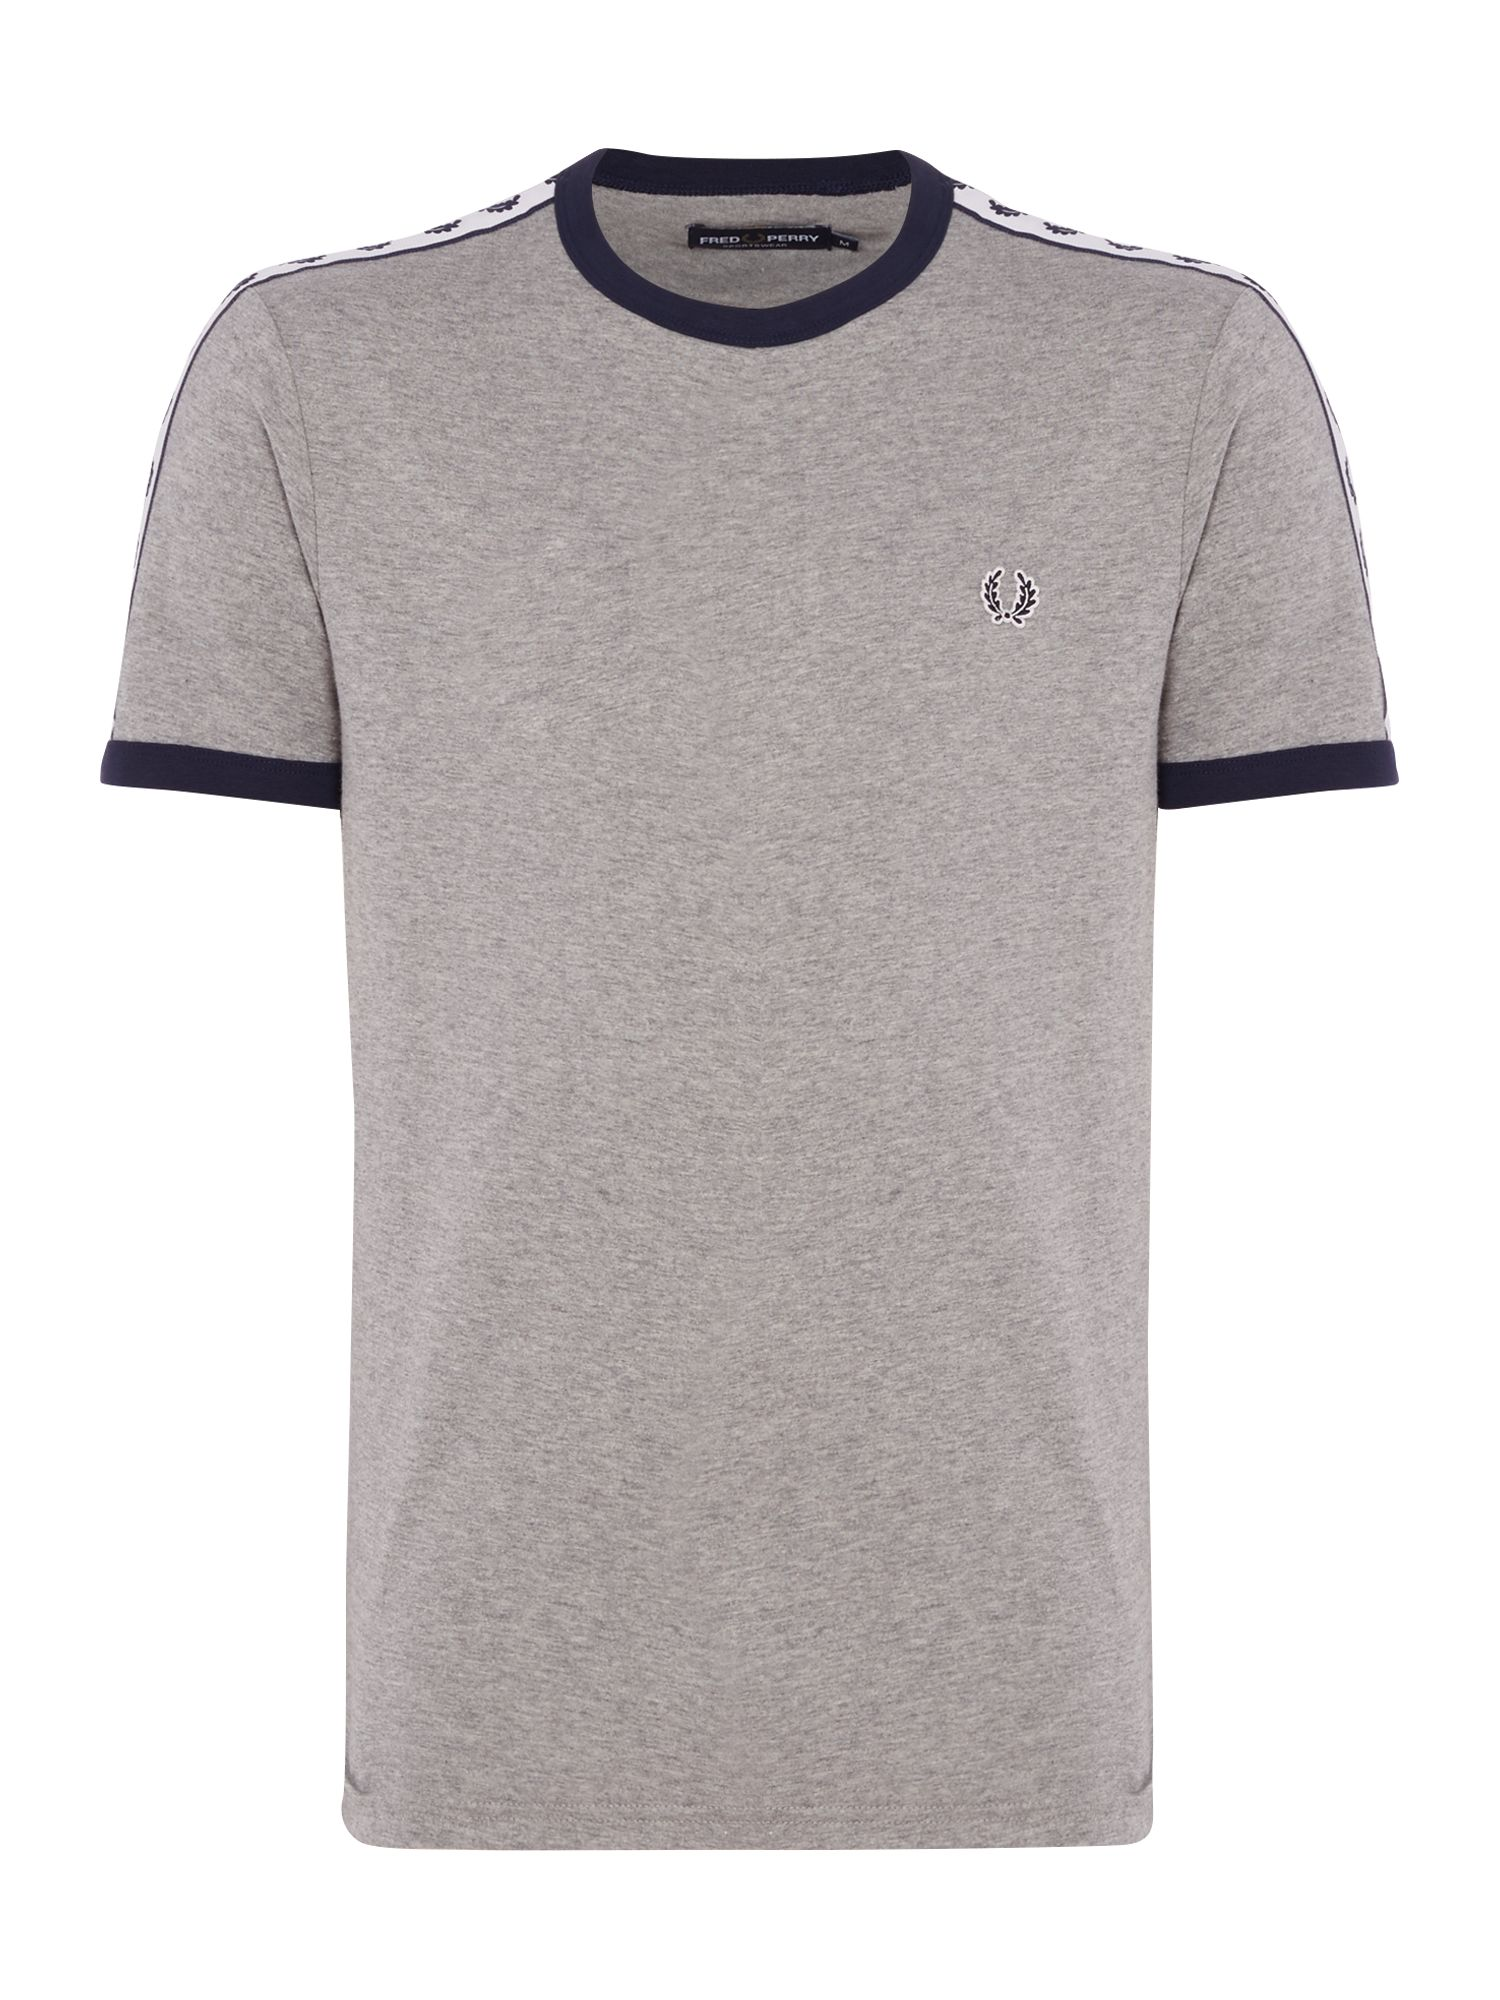 Men's Fred Perry Plain Crew Neck Regular Fit T-Shirt, Steel